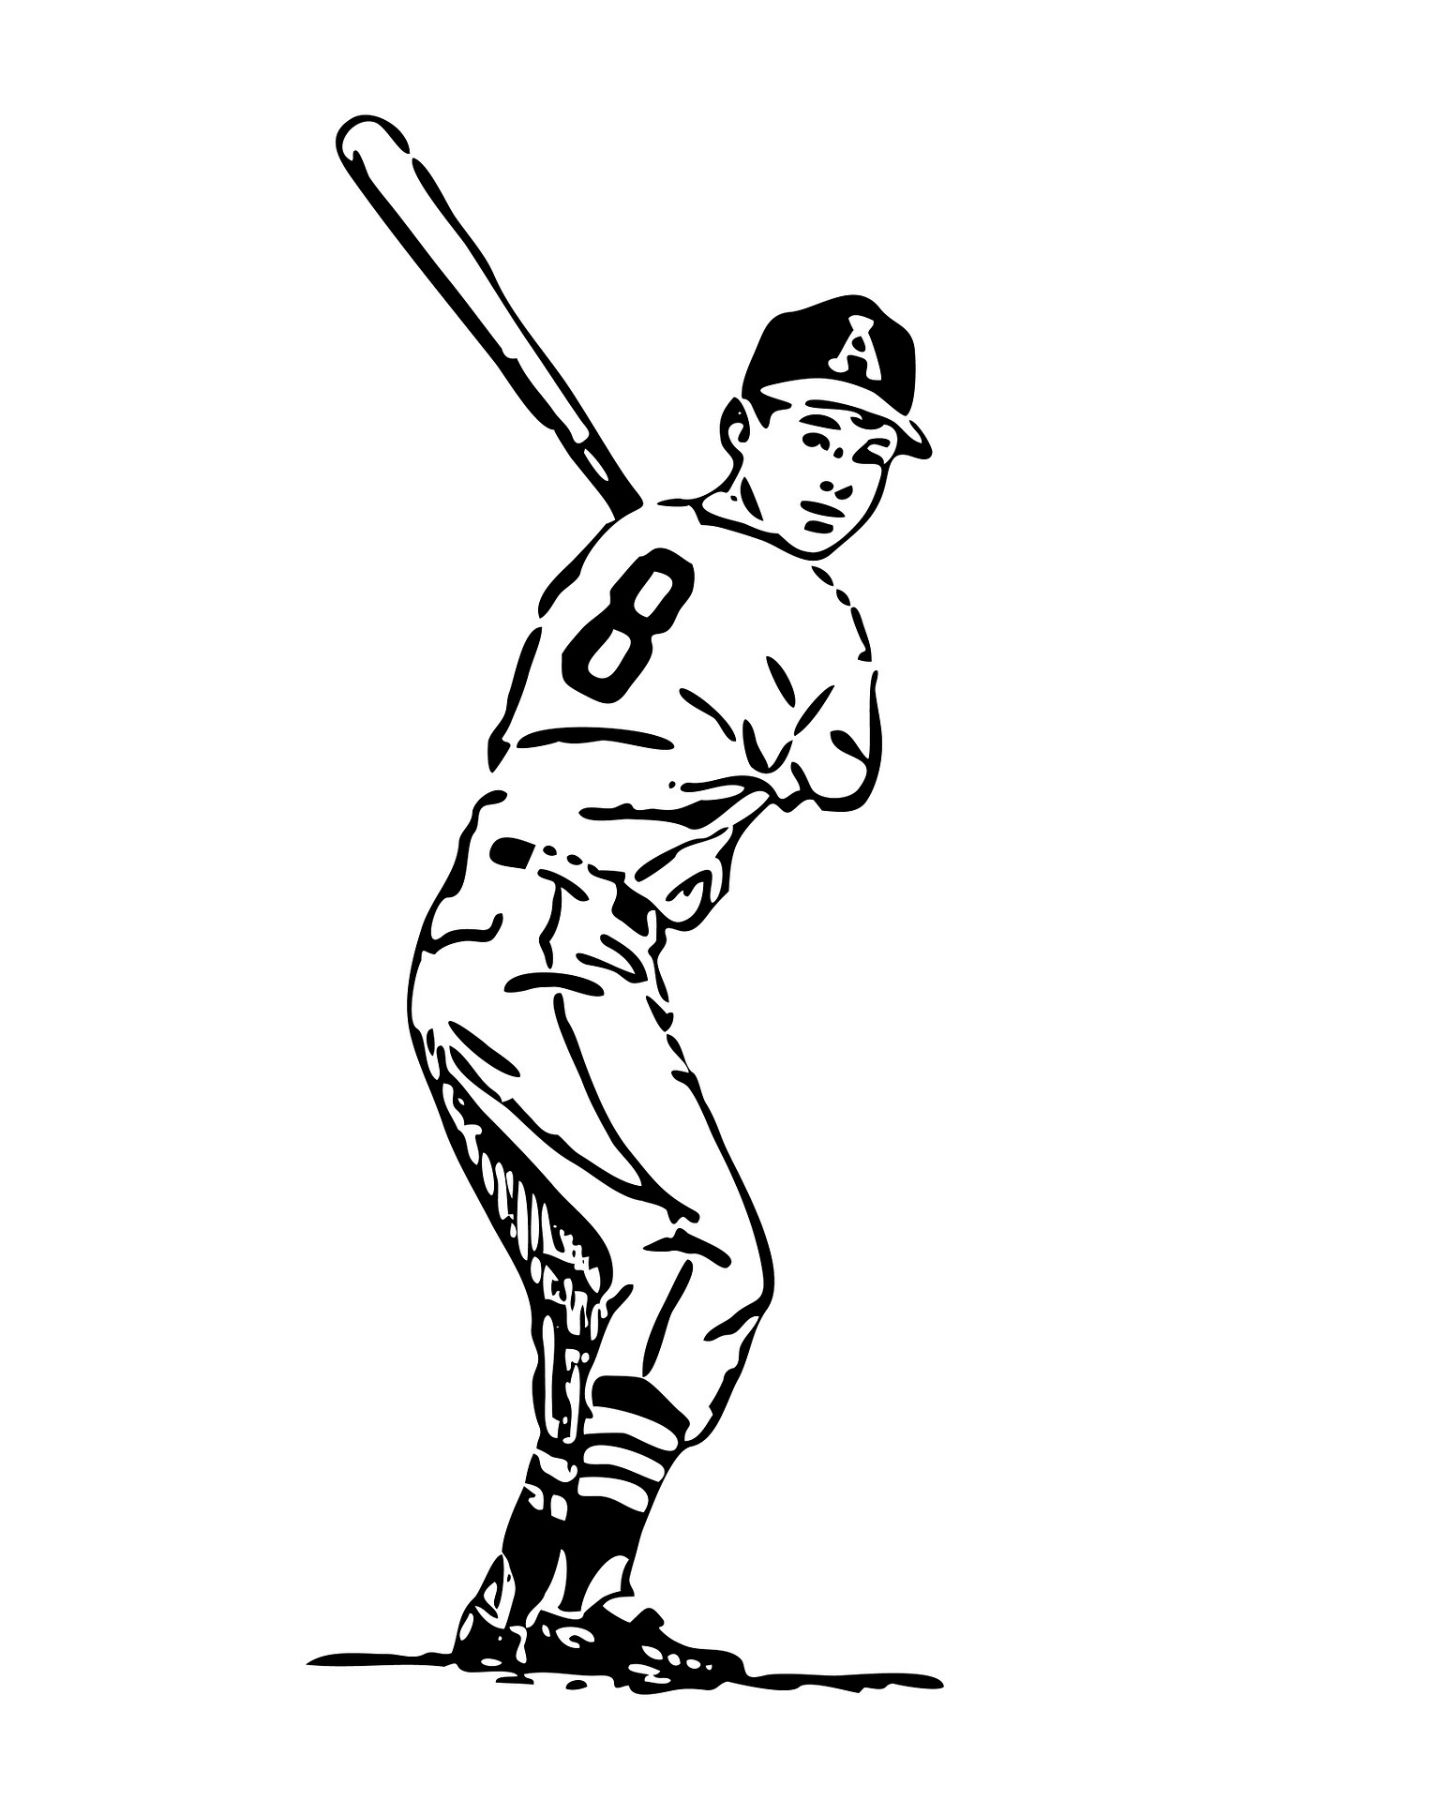 Hit The Correct Movement Coloring Pages For Kids 1r Printable Baseball Coloring Pages For Kids Baseball Coloring Pages Sport Outfit Woman Coloring Pages